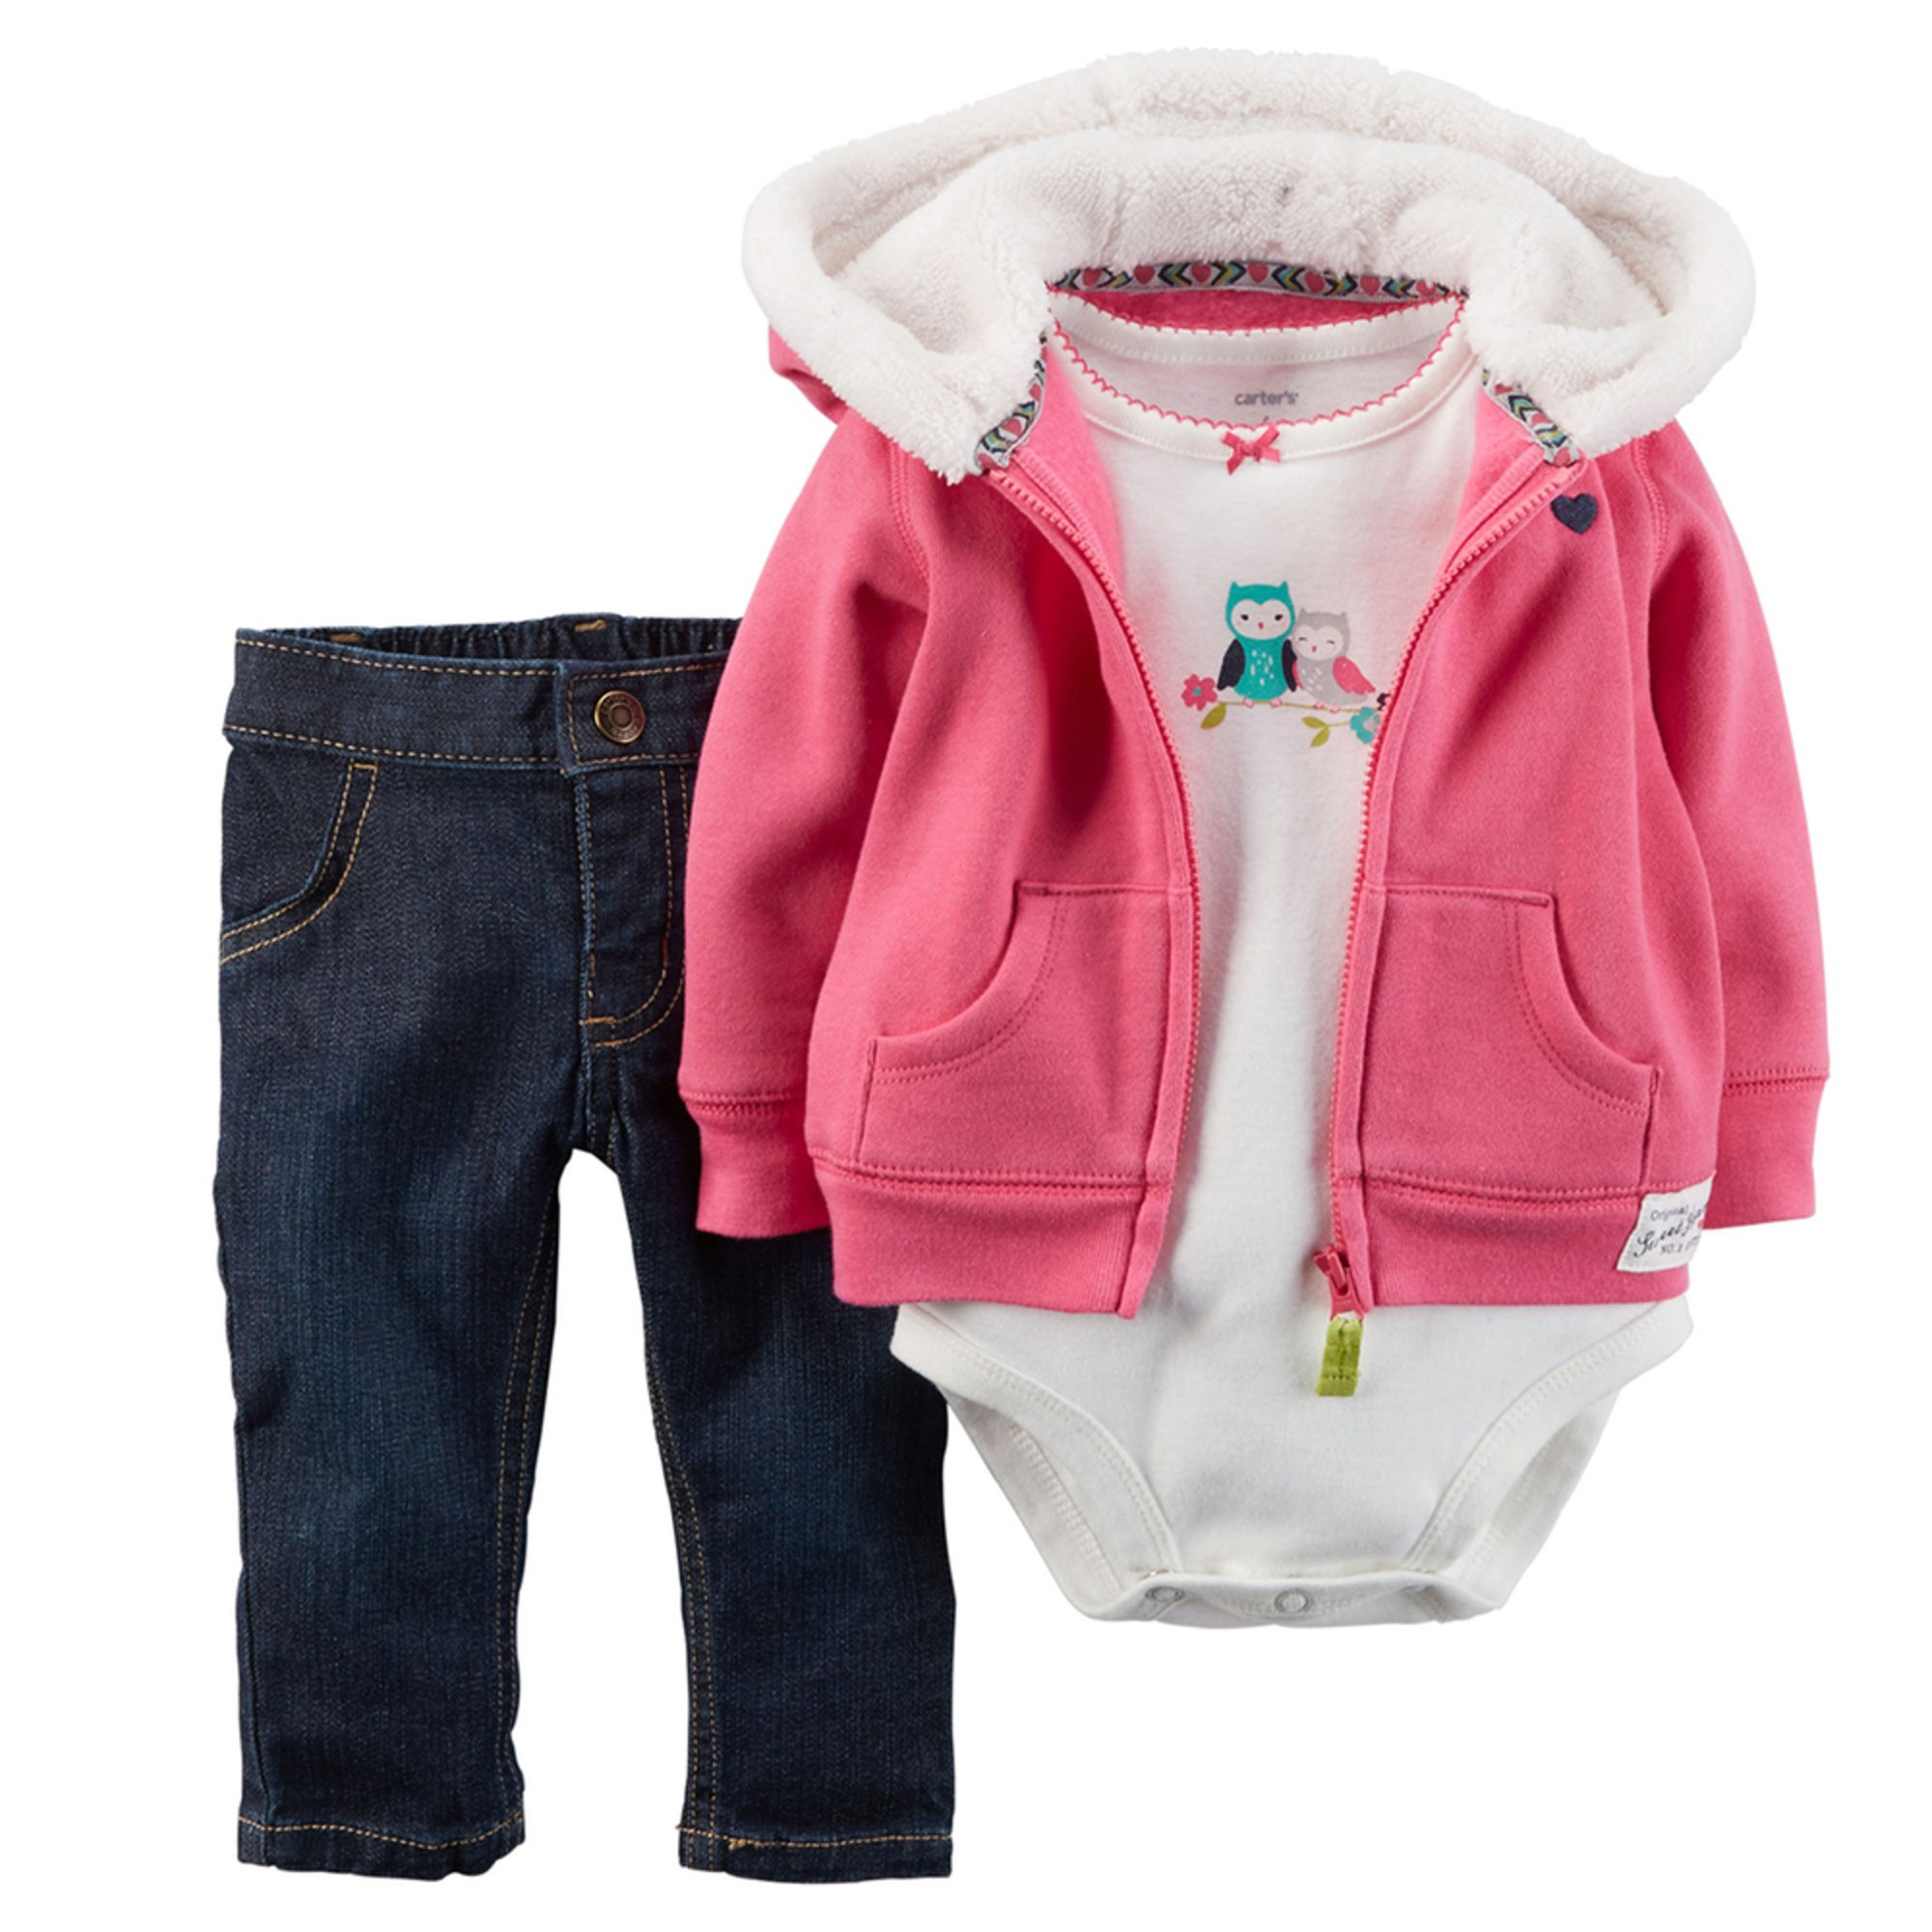 Carter's Baby Girls' 3-piece Cardigan Set - Pink | Baby ...